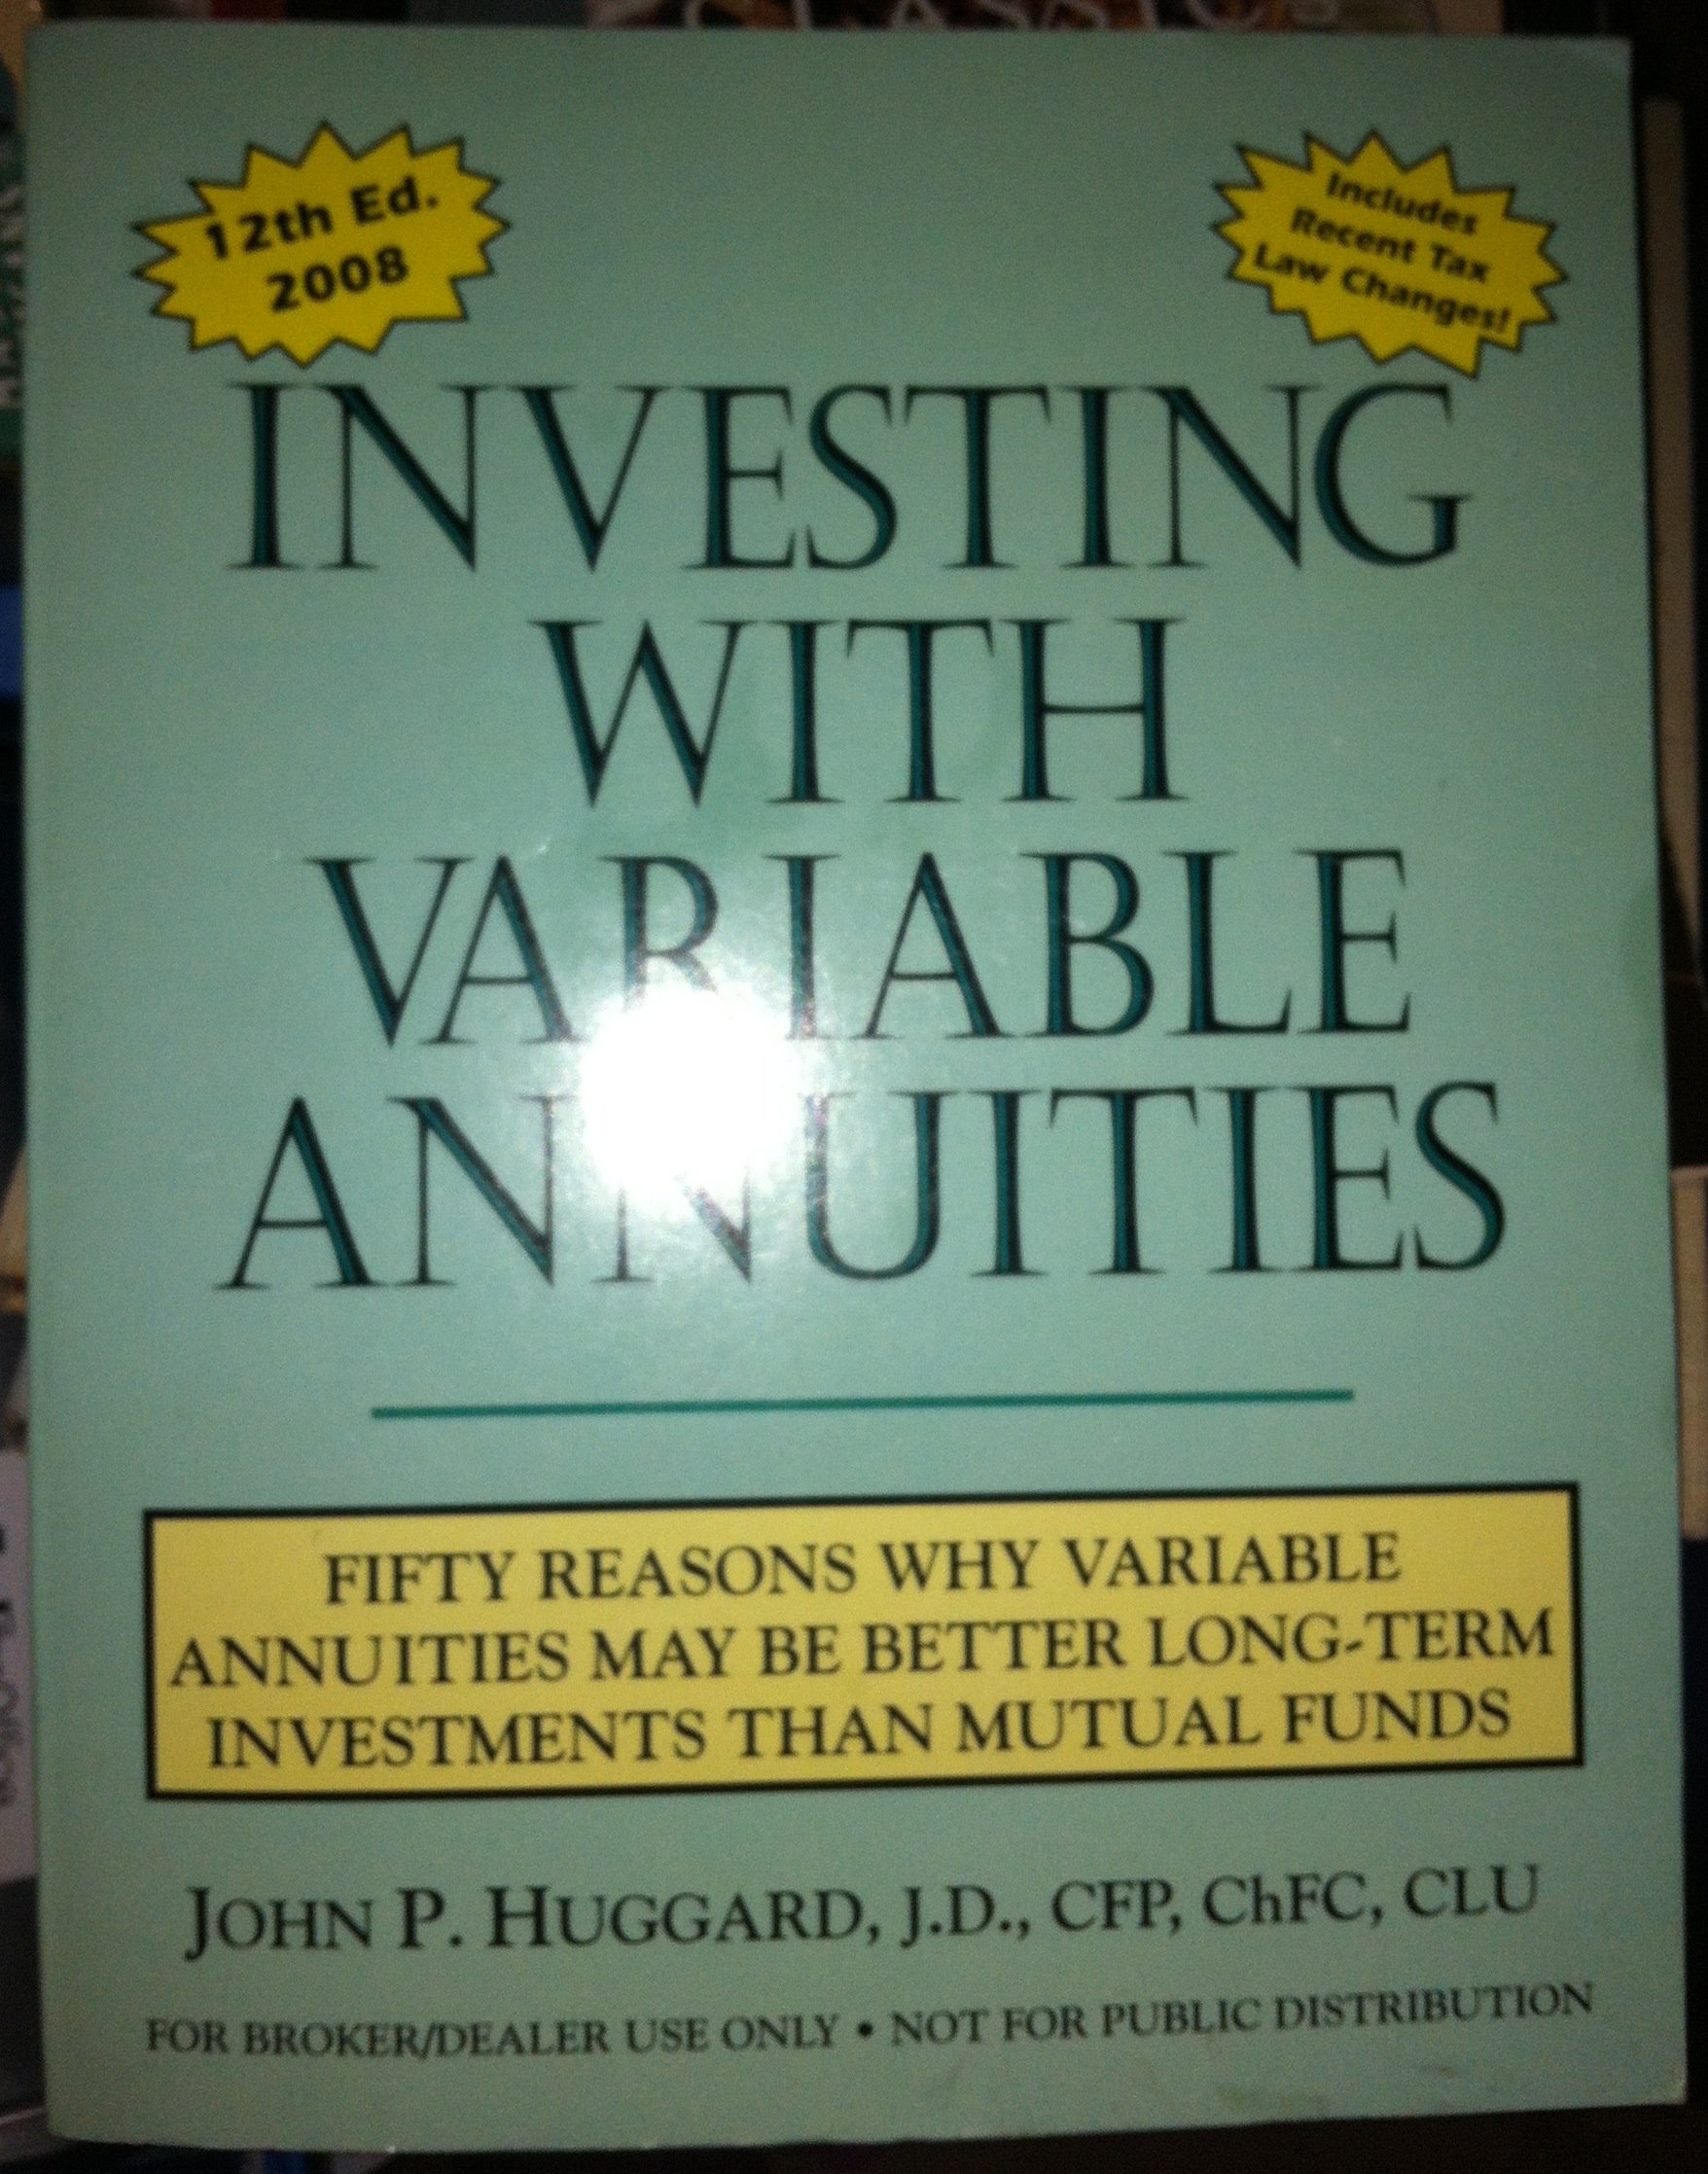 Investing with Variable Annuities (Fifty Reasons Why Variable Annuities May Be Better Long-Term Investments Than Mutual Funds)